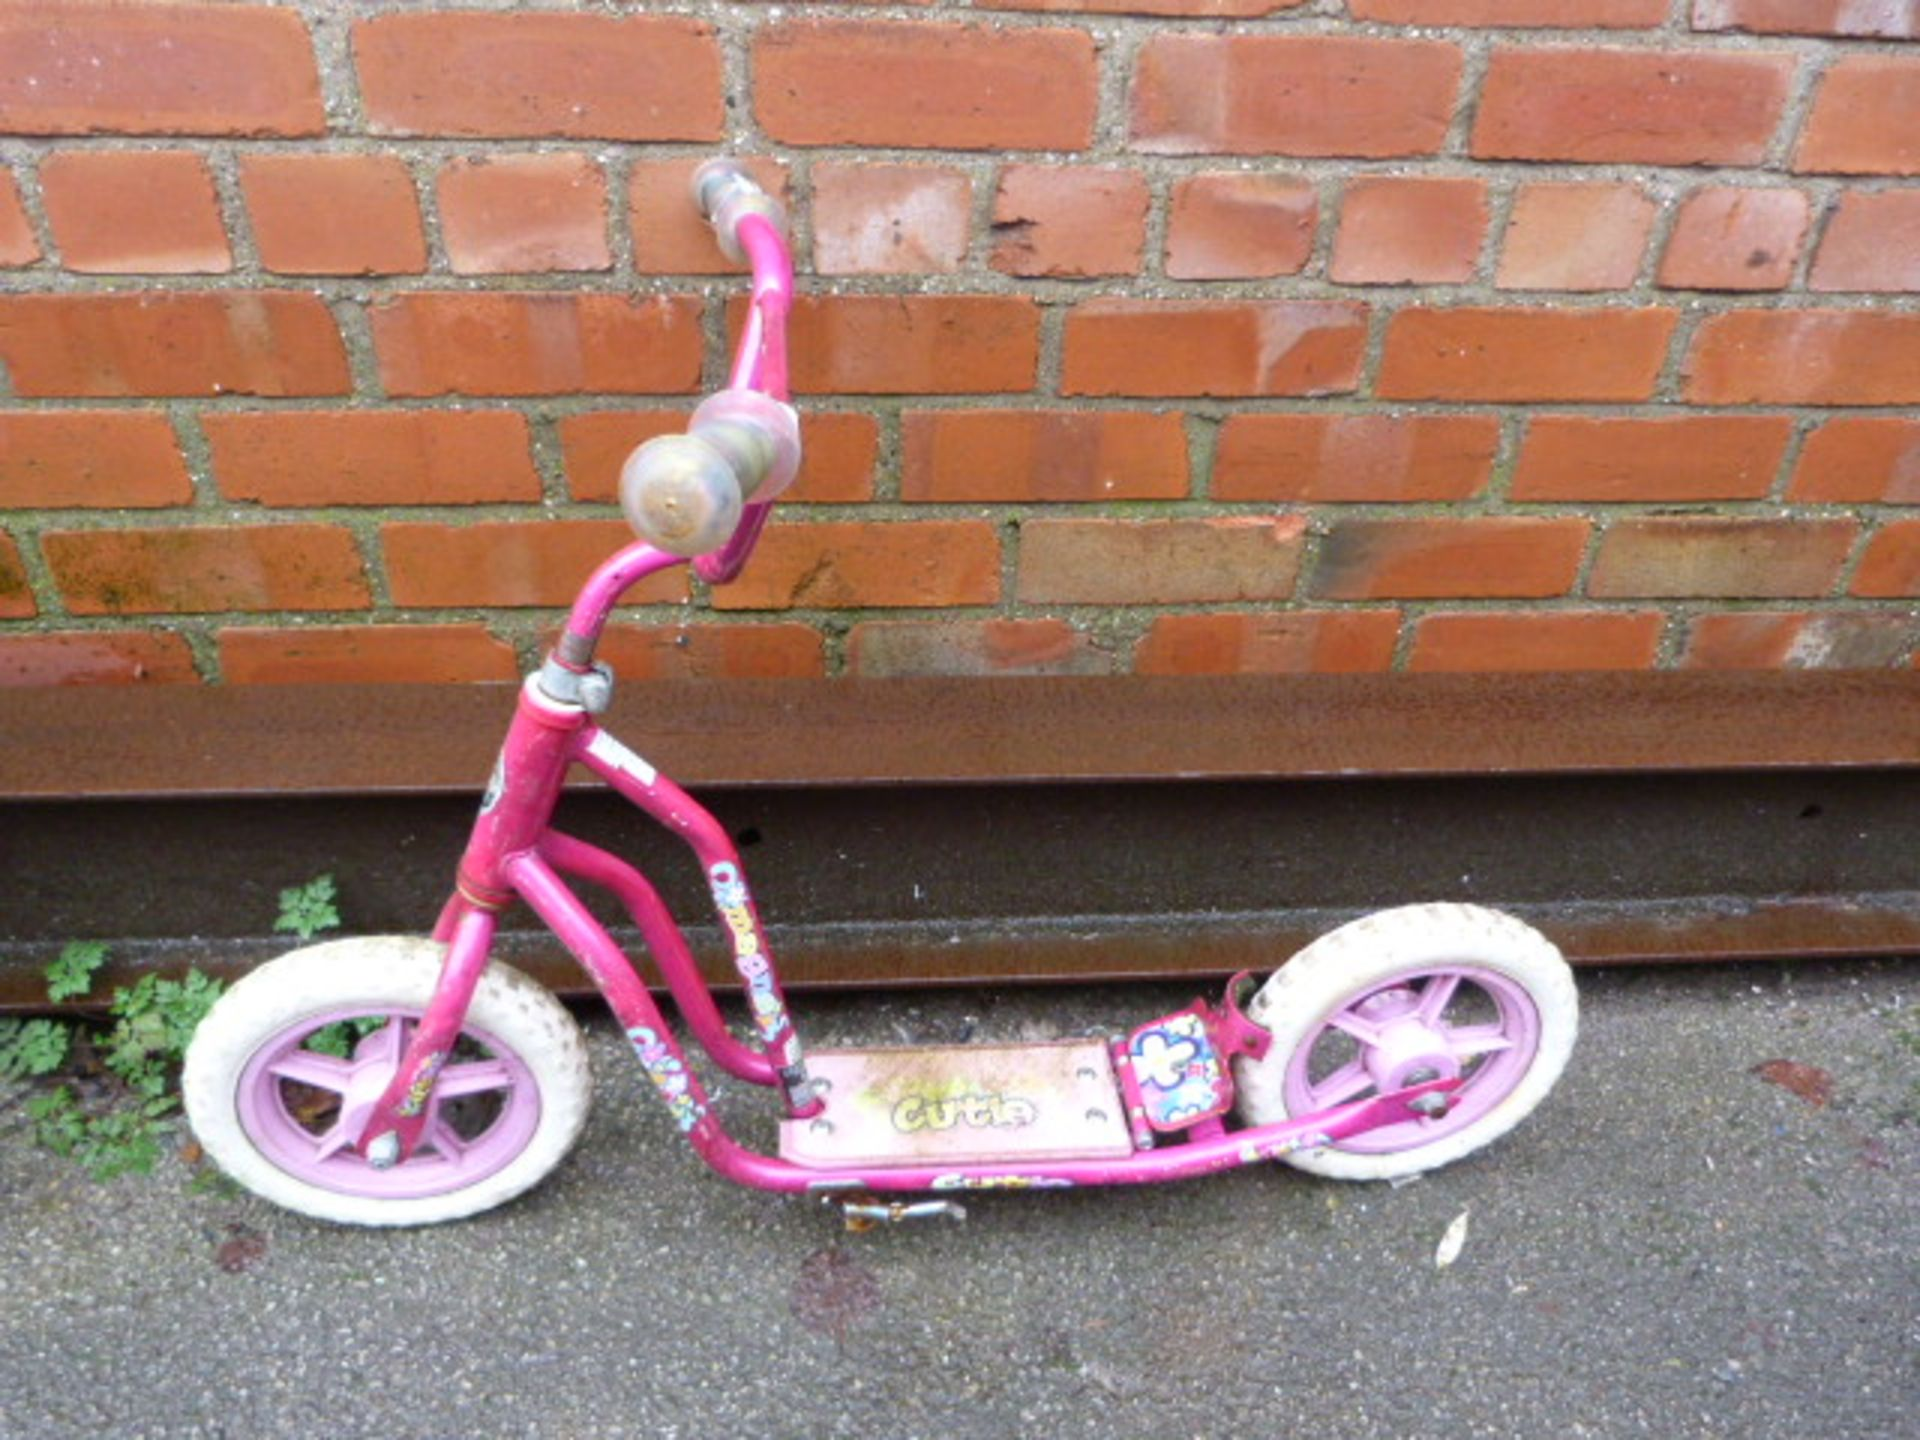 Lot 257 - Girl's Cutie Scooter